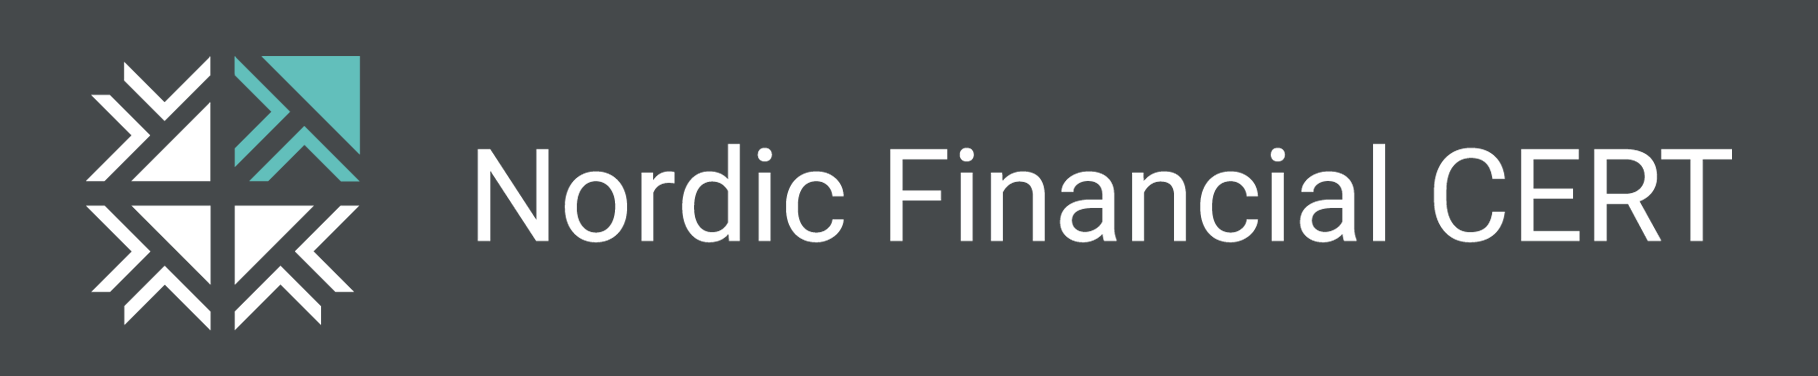 Nordic Financial CERT